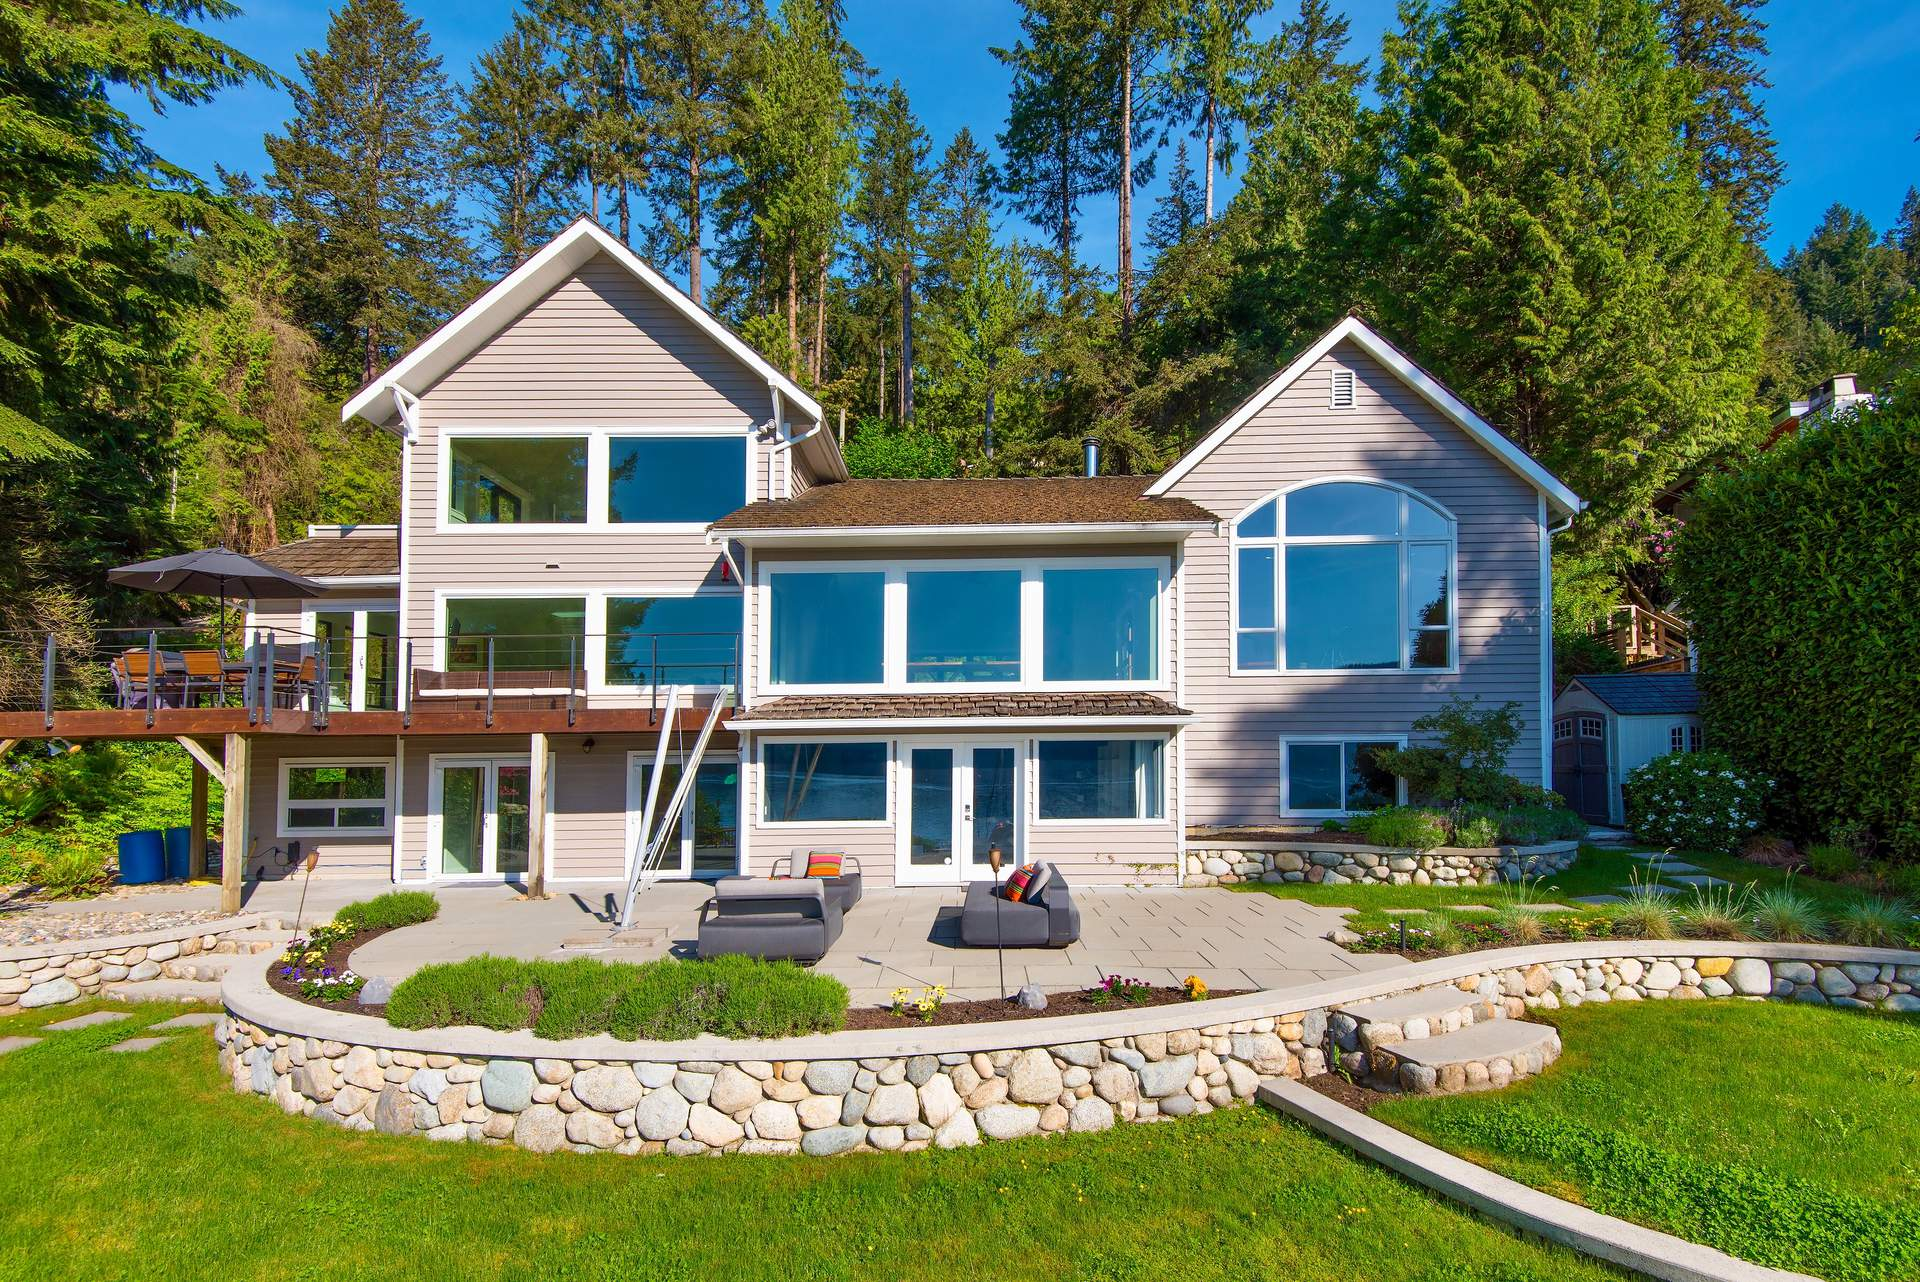 SPECTACULAR NEWLY RENOVATED WATERFRONT RESIDENCE WITH MOORAGE FOR 50' YACHT